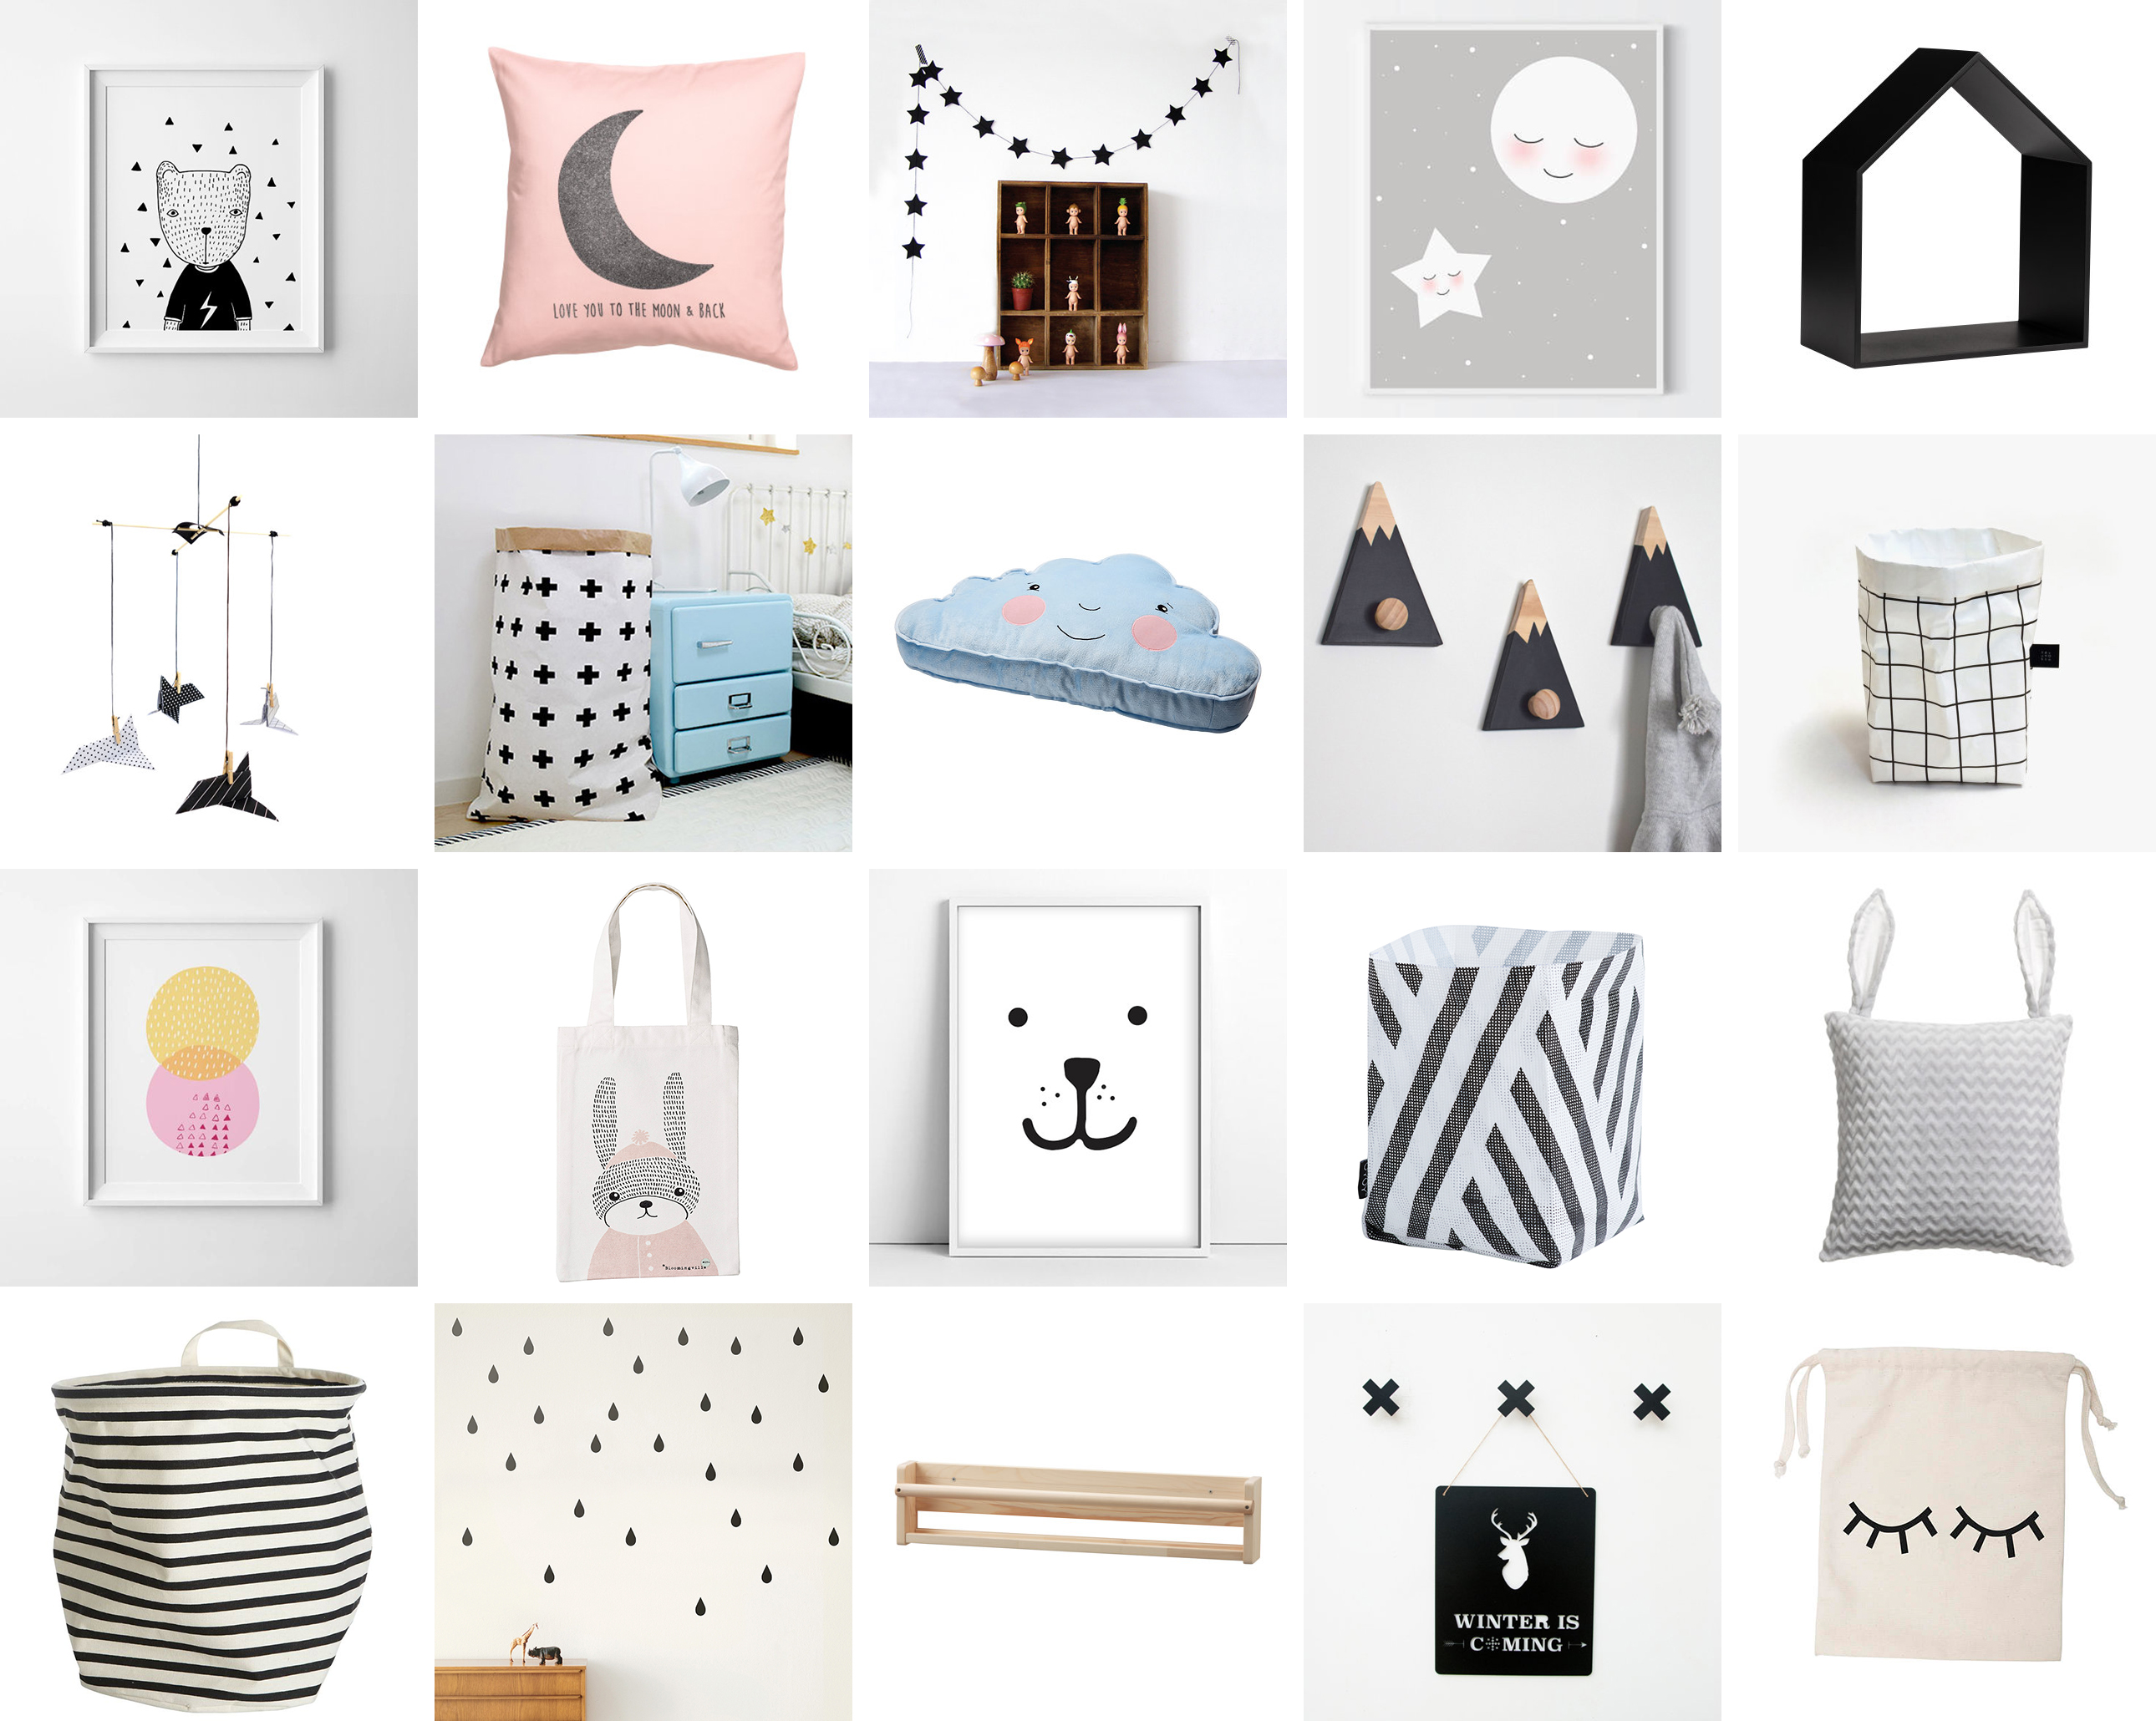 Favourite scandinavian nursery kids room decor items for Small home decor items